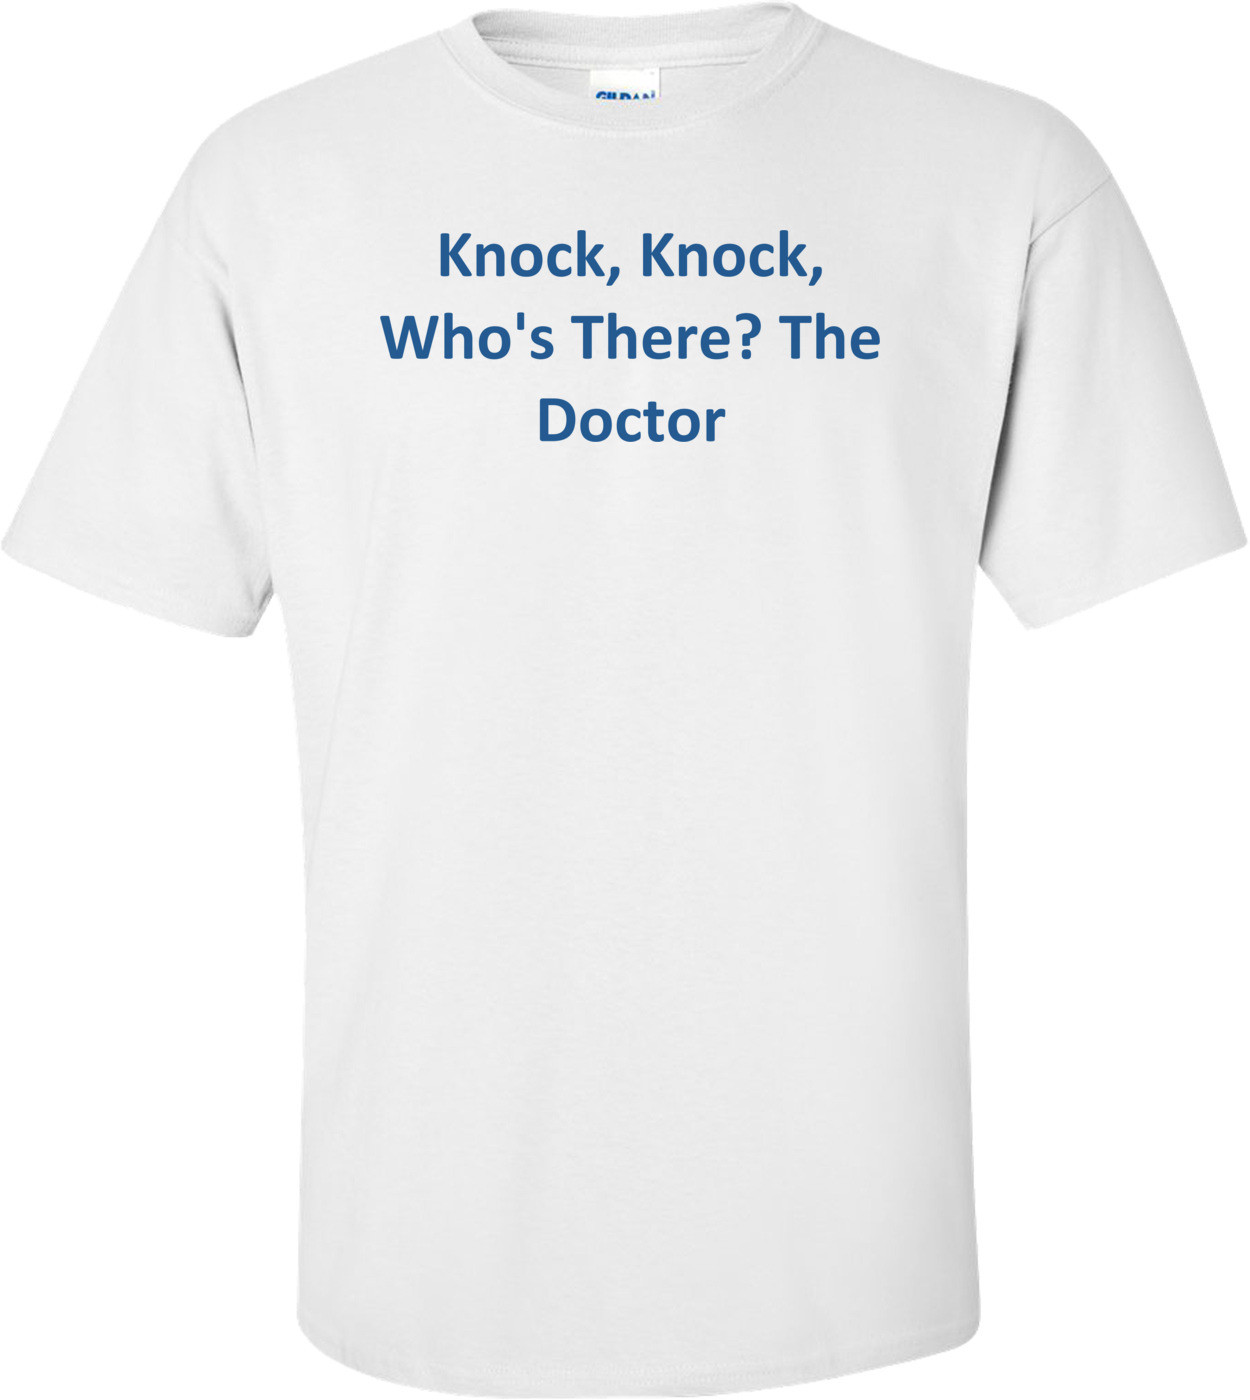 Knock, Knock, Who's There? The Doctor Shirt